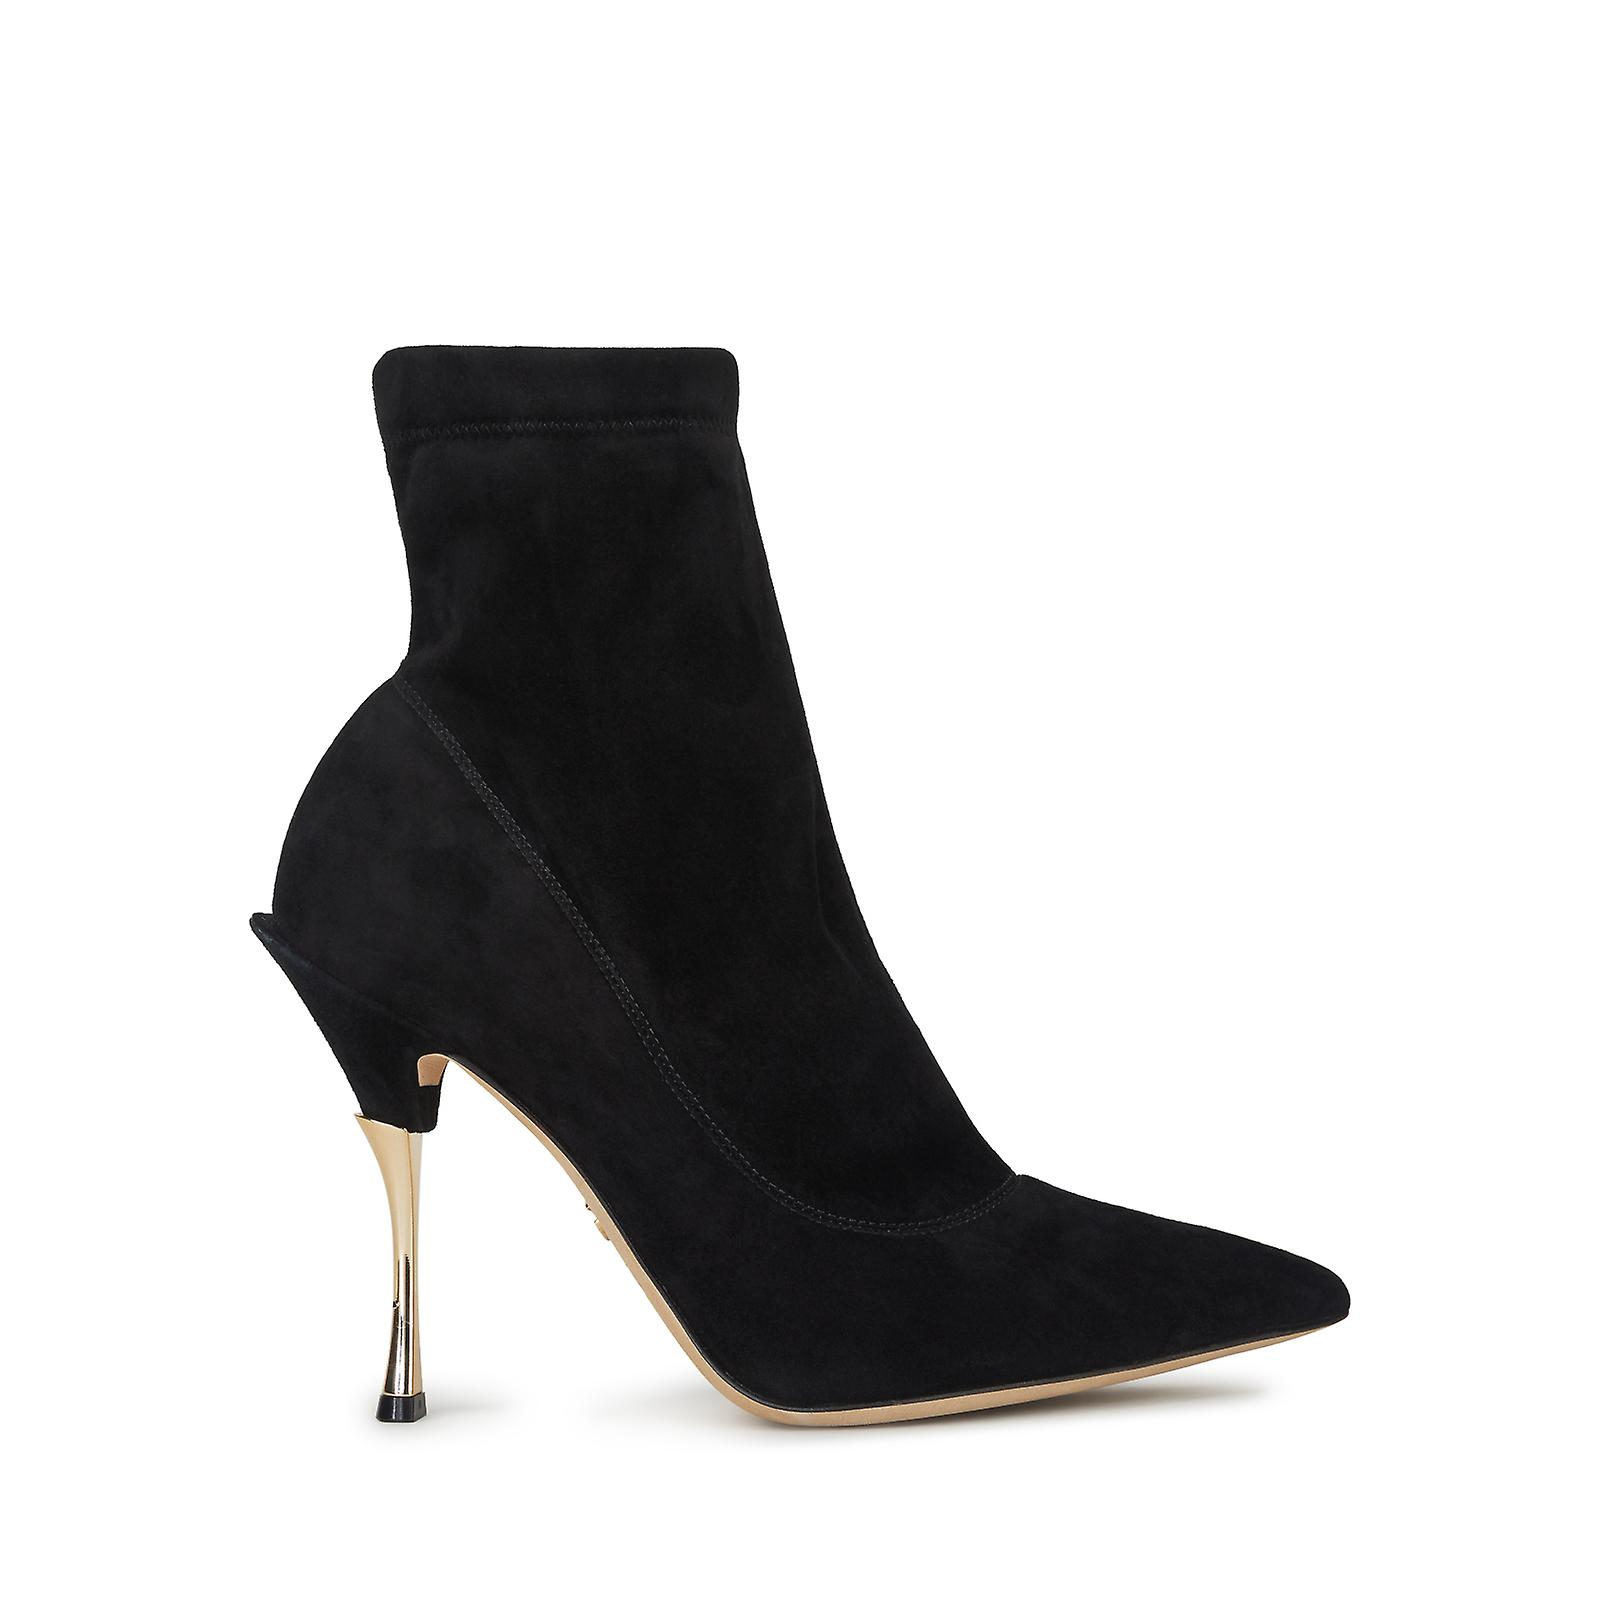 Dolce & Gabbana Pointed Short Boots In Solid-Coloured Stretch Suede hfm3O